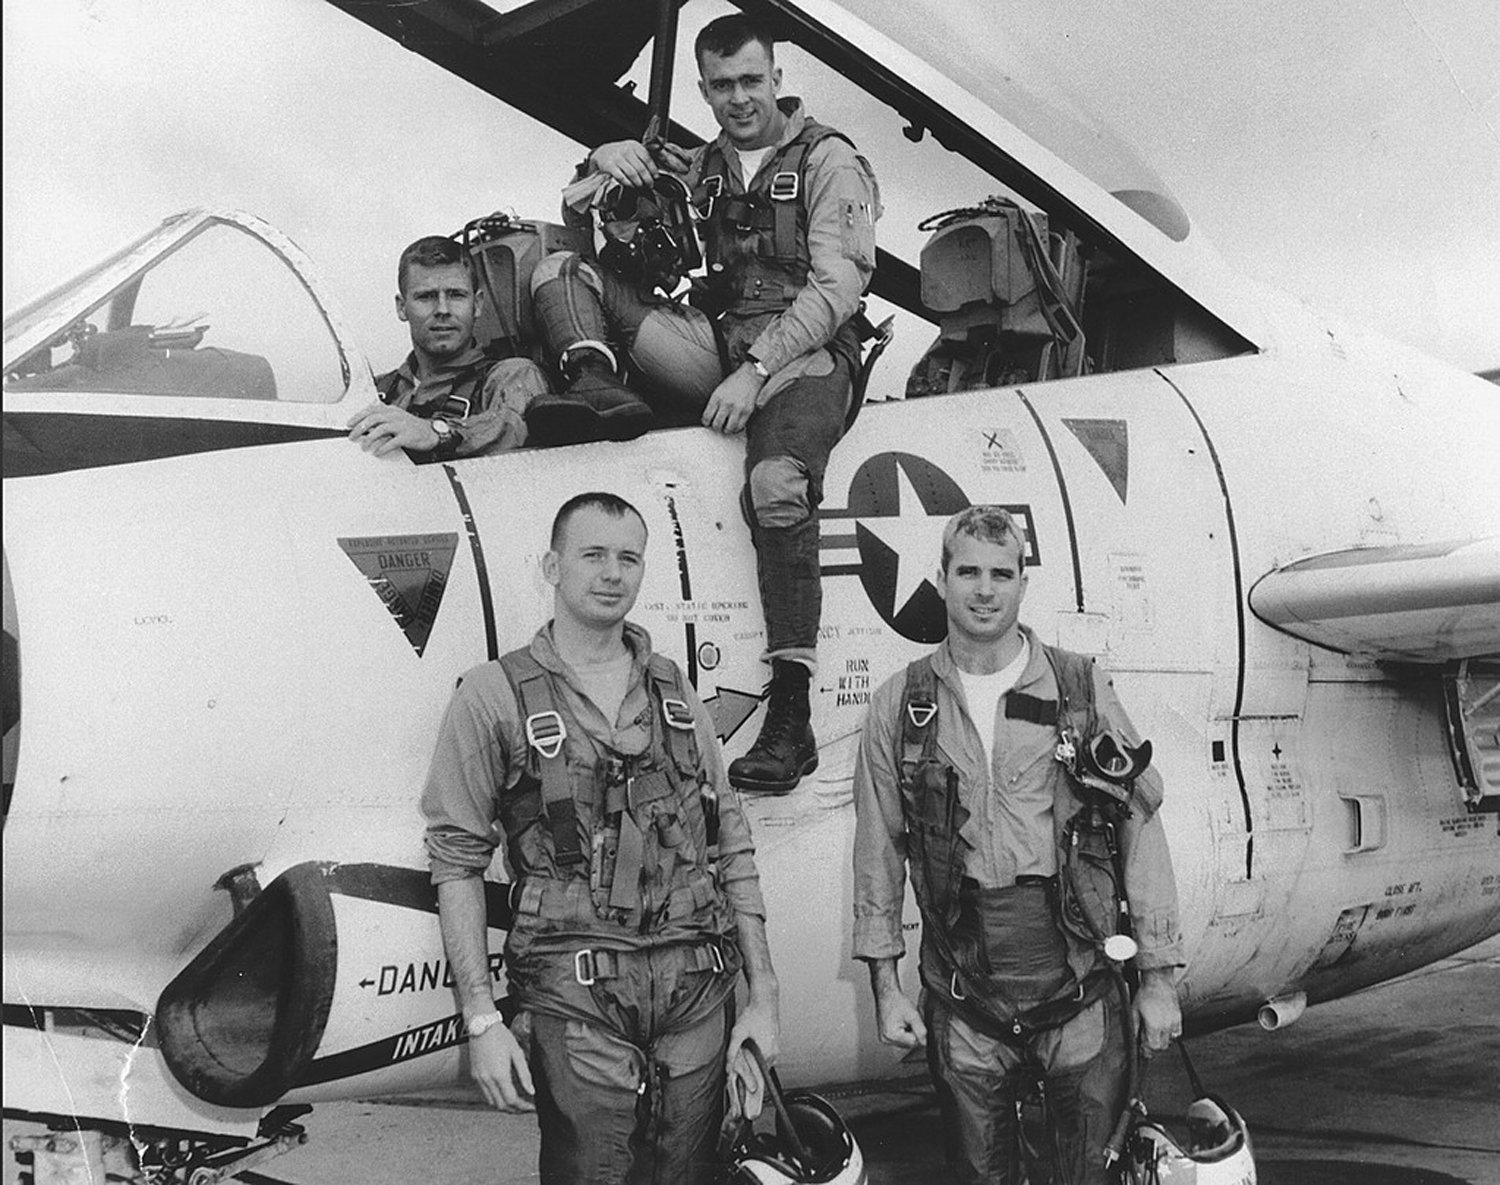 John McCain, front right, poses with his squadron in 1965. McCain has been awarded the Silver Star, Bronze Star, Legion of Merit, Purple Heart, Distinguished Flying Cross medal and the Prisoner of War medal. (Library of Congress via AP)